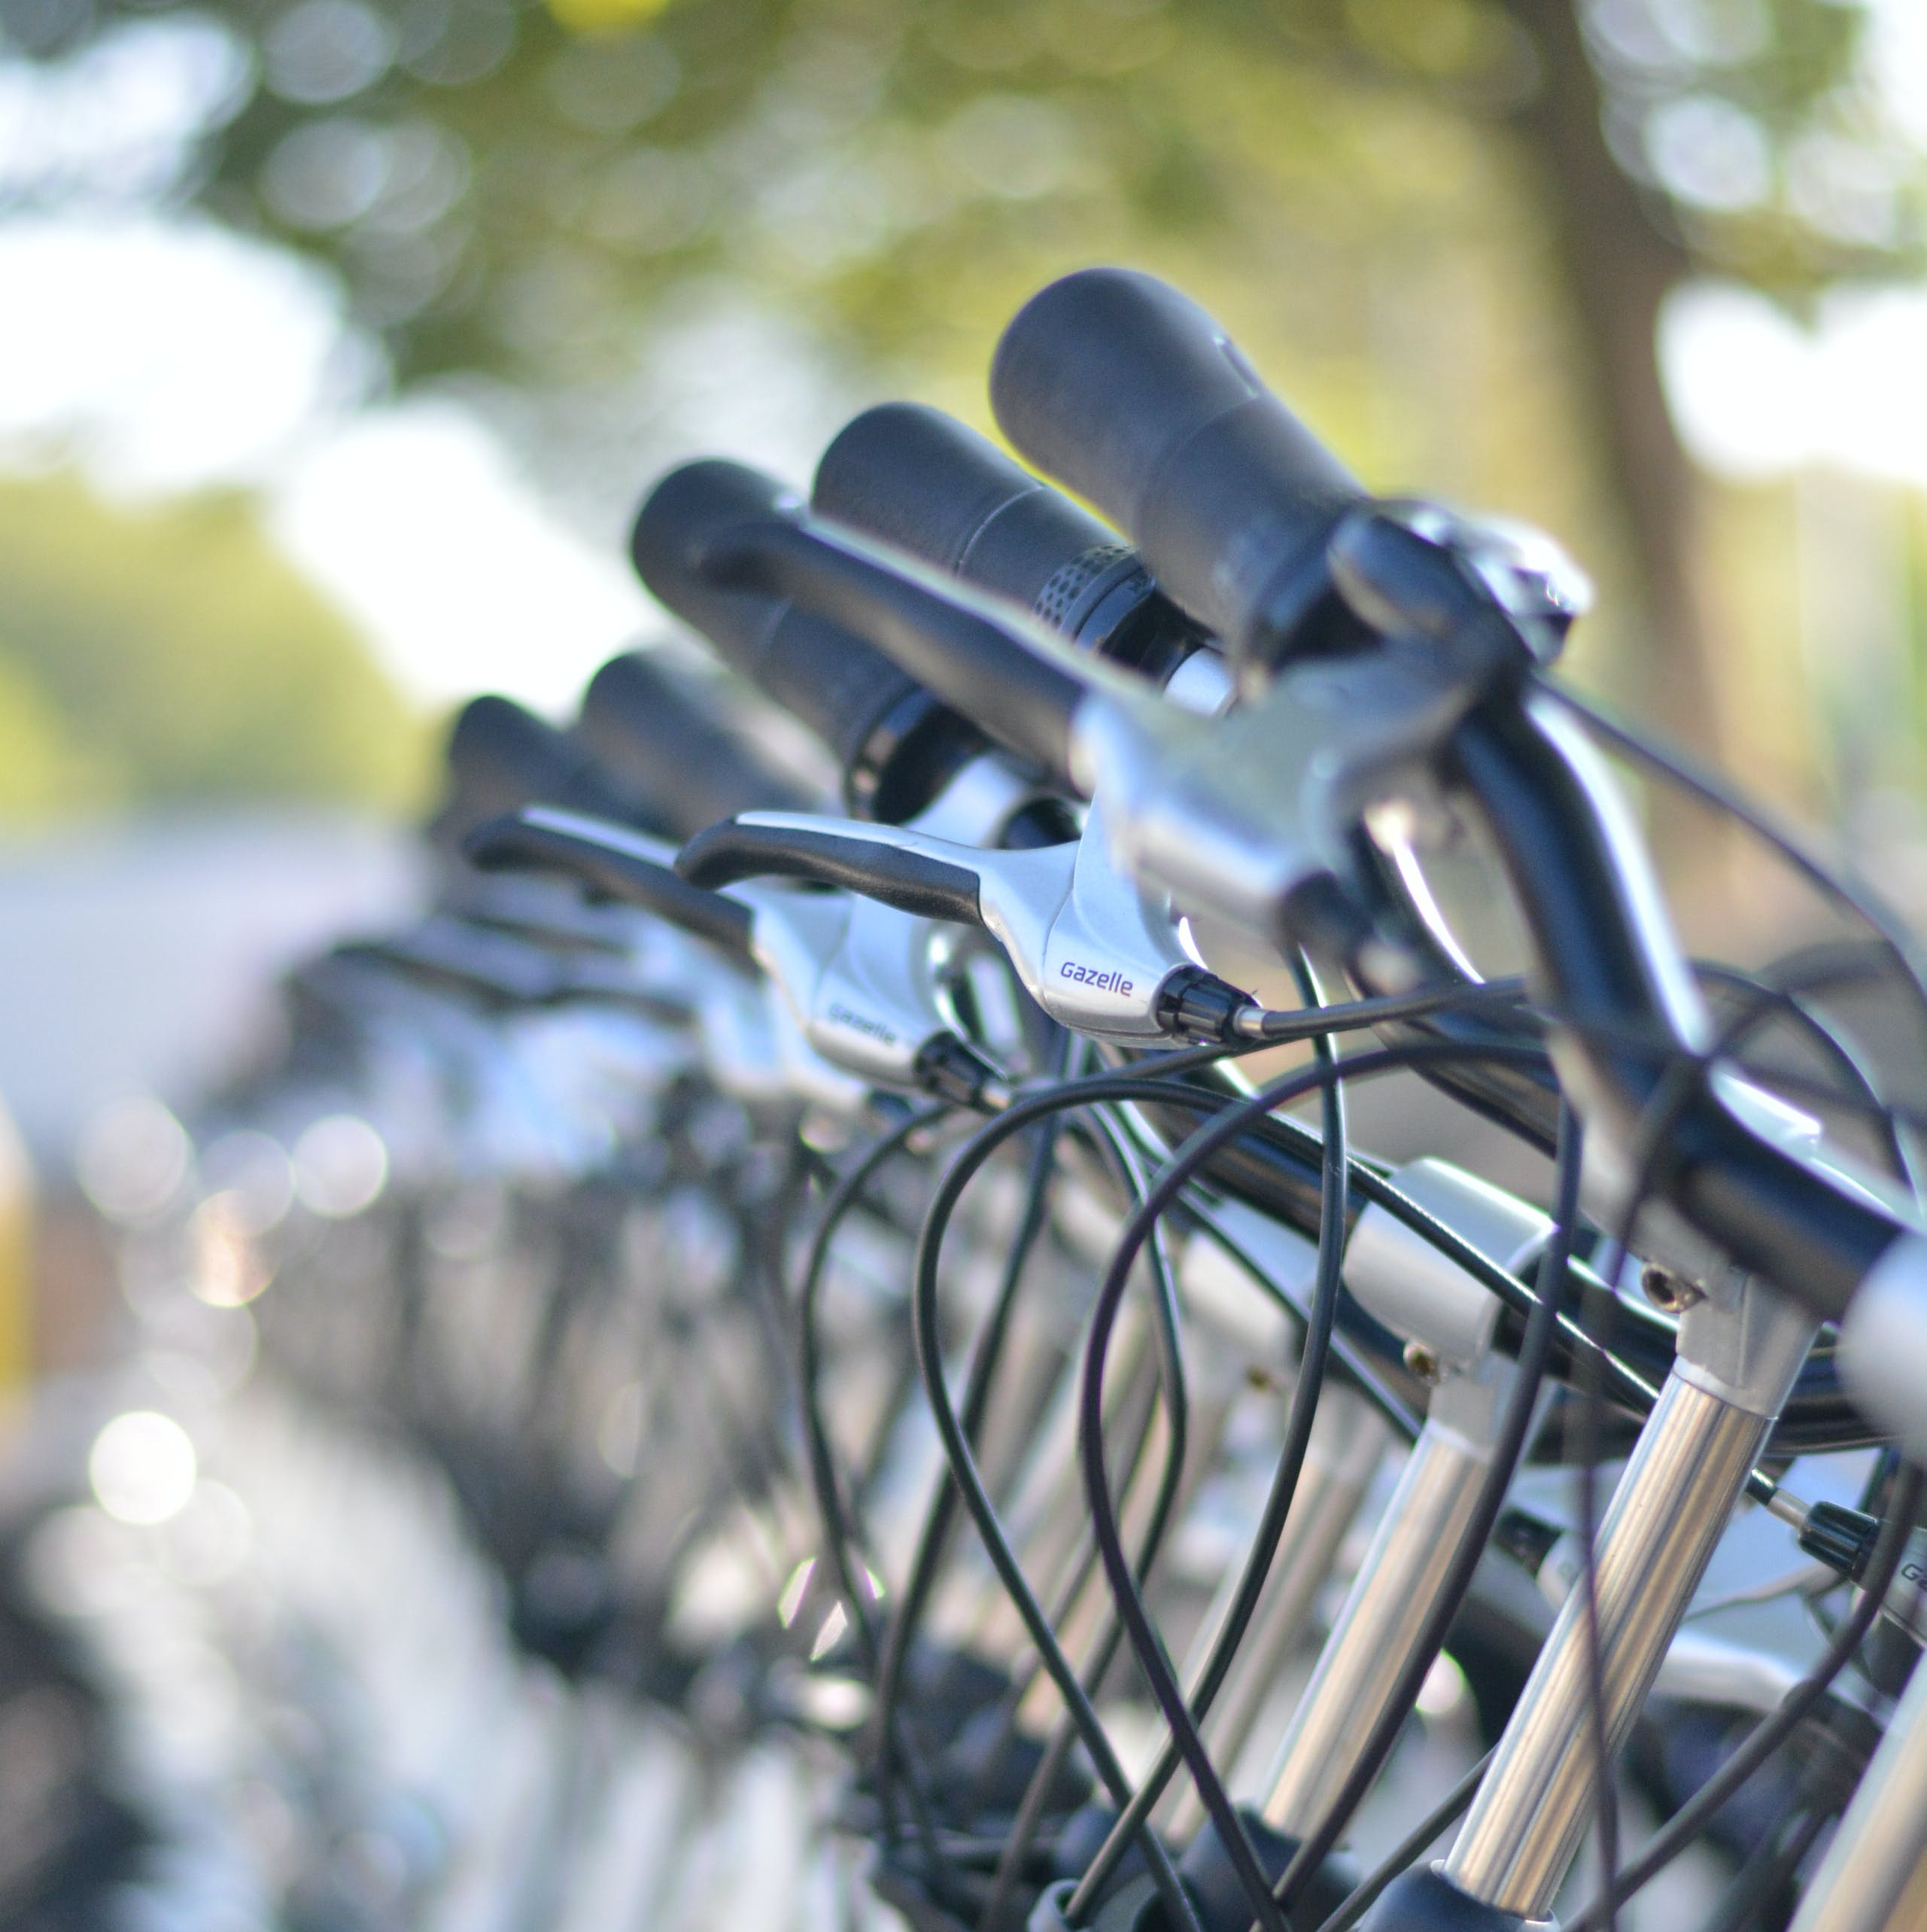 Gray and Black Bicycles during Daytime